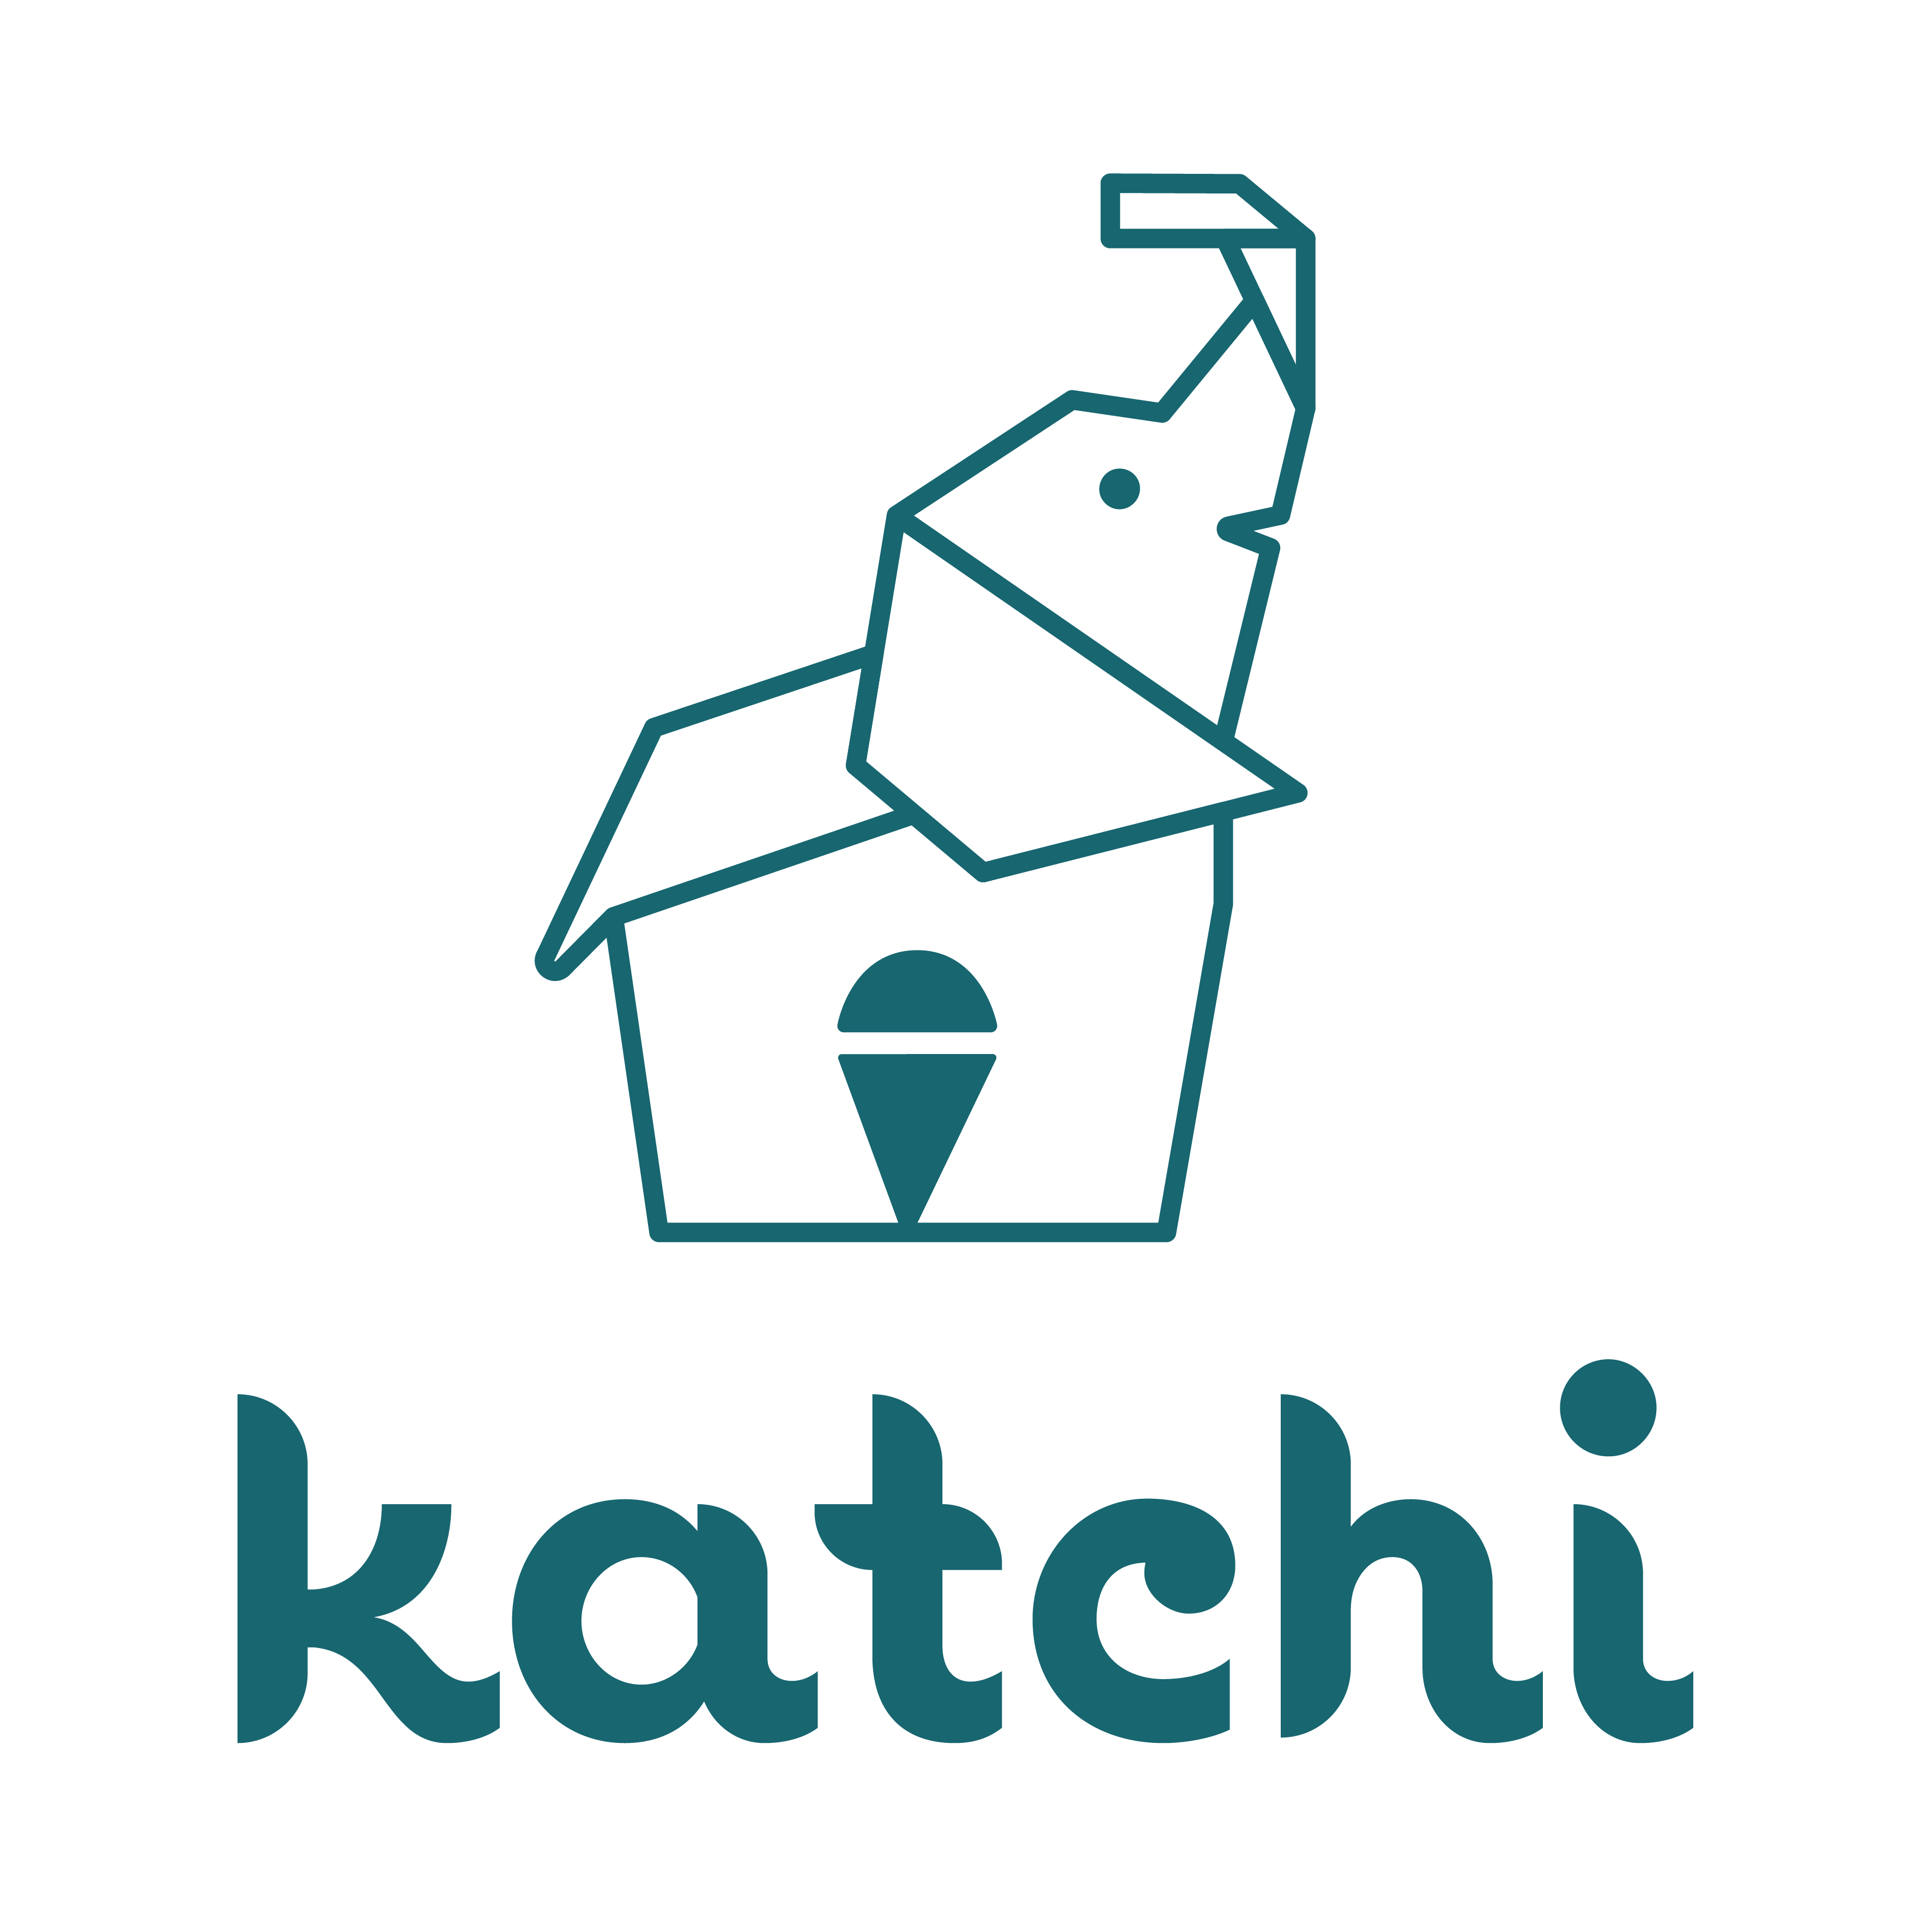 Katchi Ice Cream